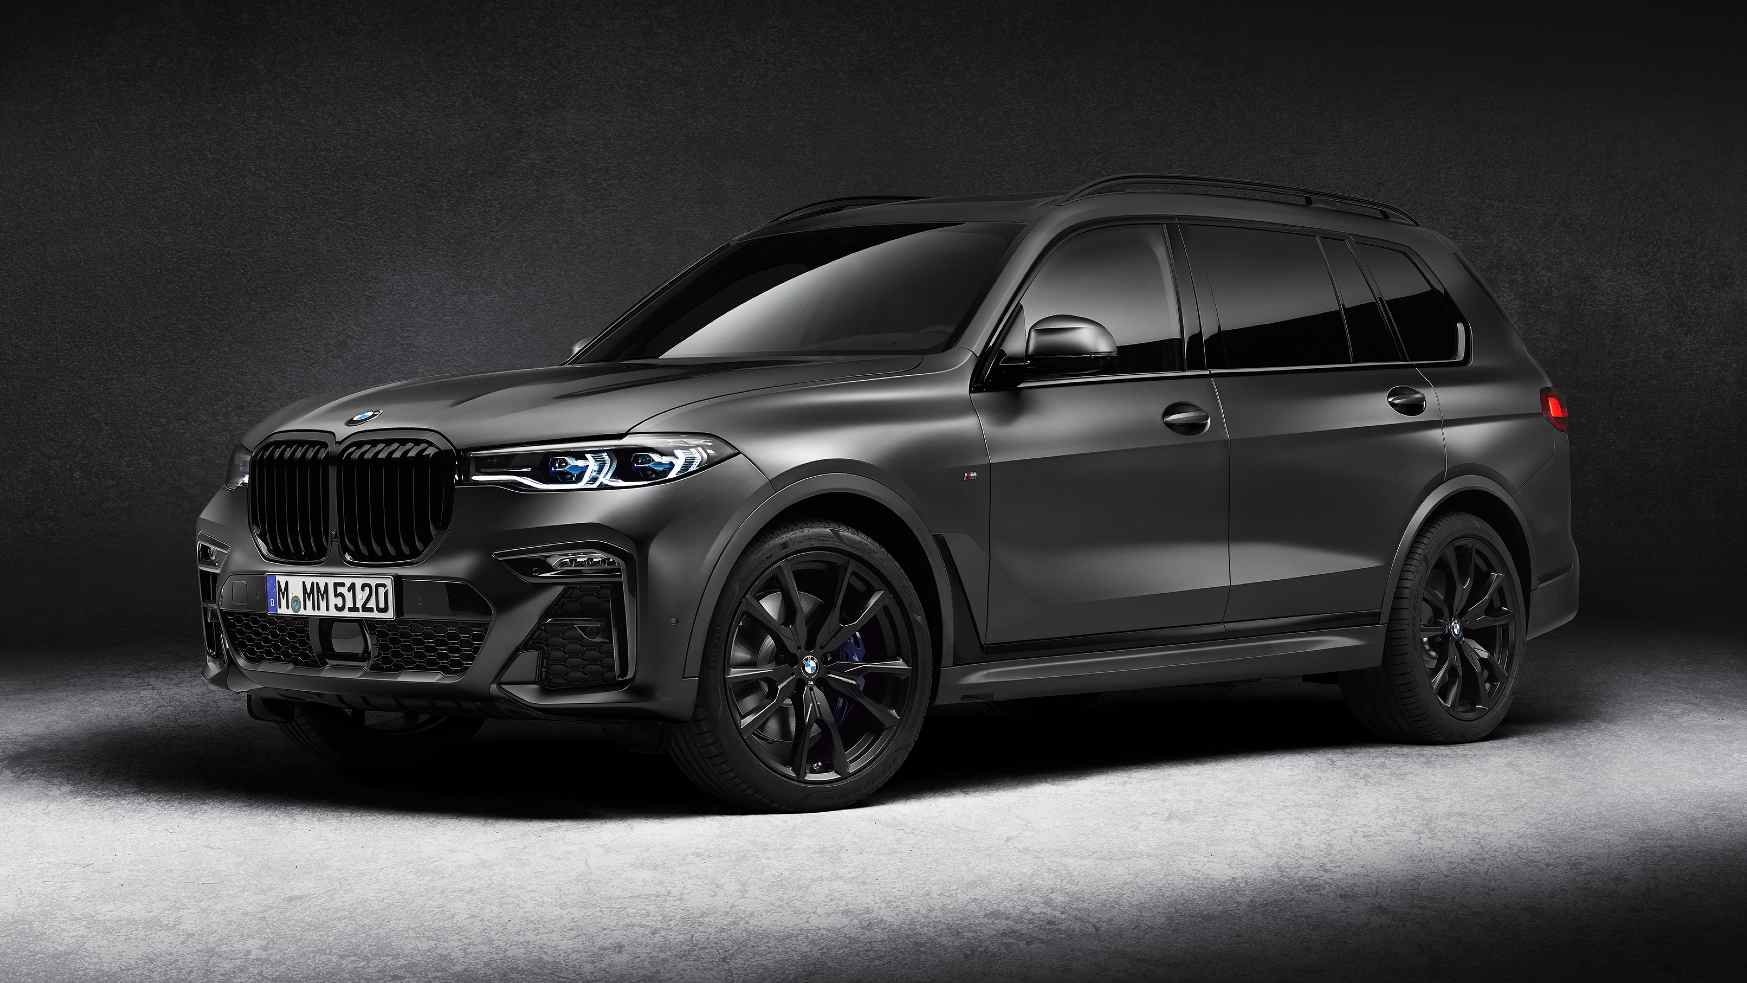 BMW X7 Dark Shadow launched in India at Rs 2.02 crore, just 500 units available globally- Technology News, Gadgetclock